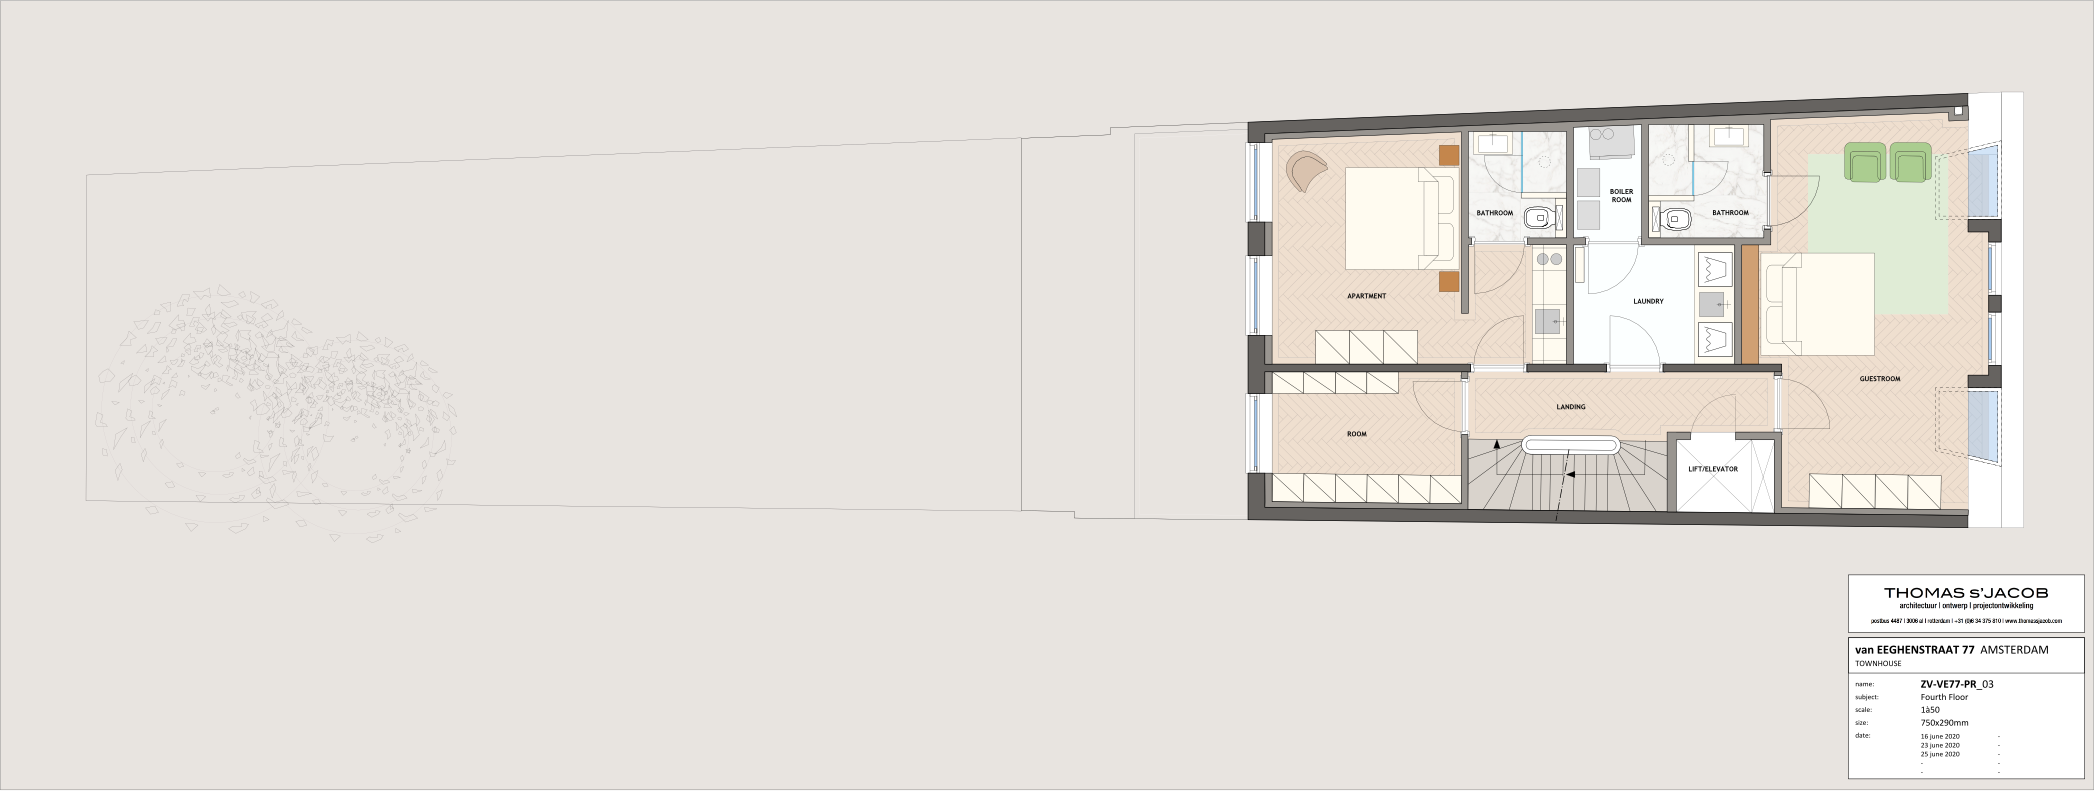 floor plan ven eeghenstraat 77 fourth floor